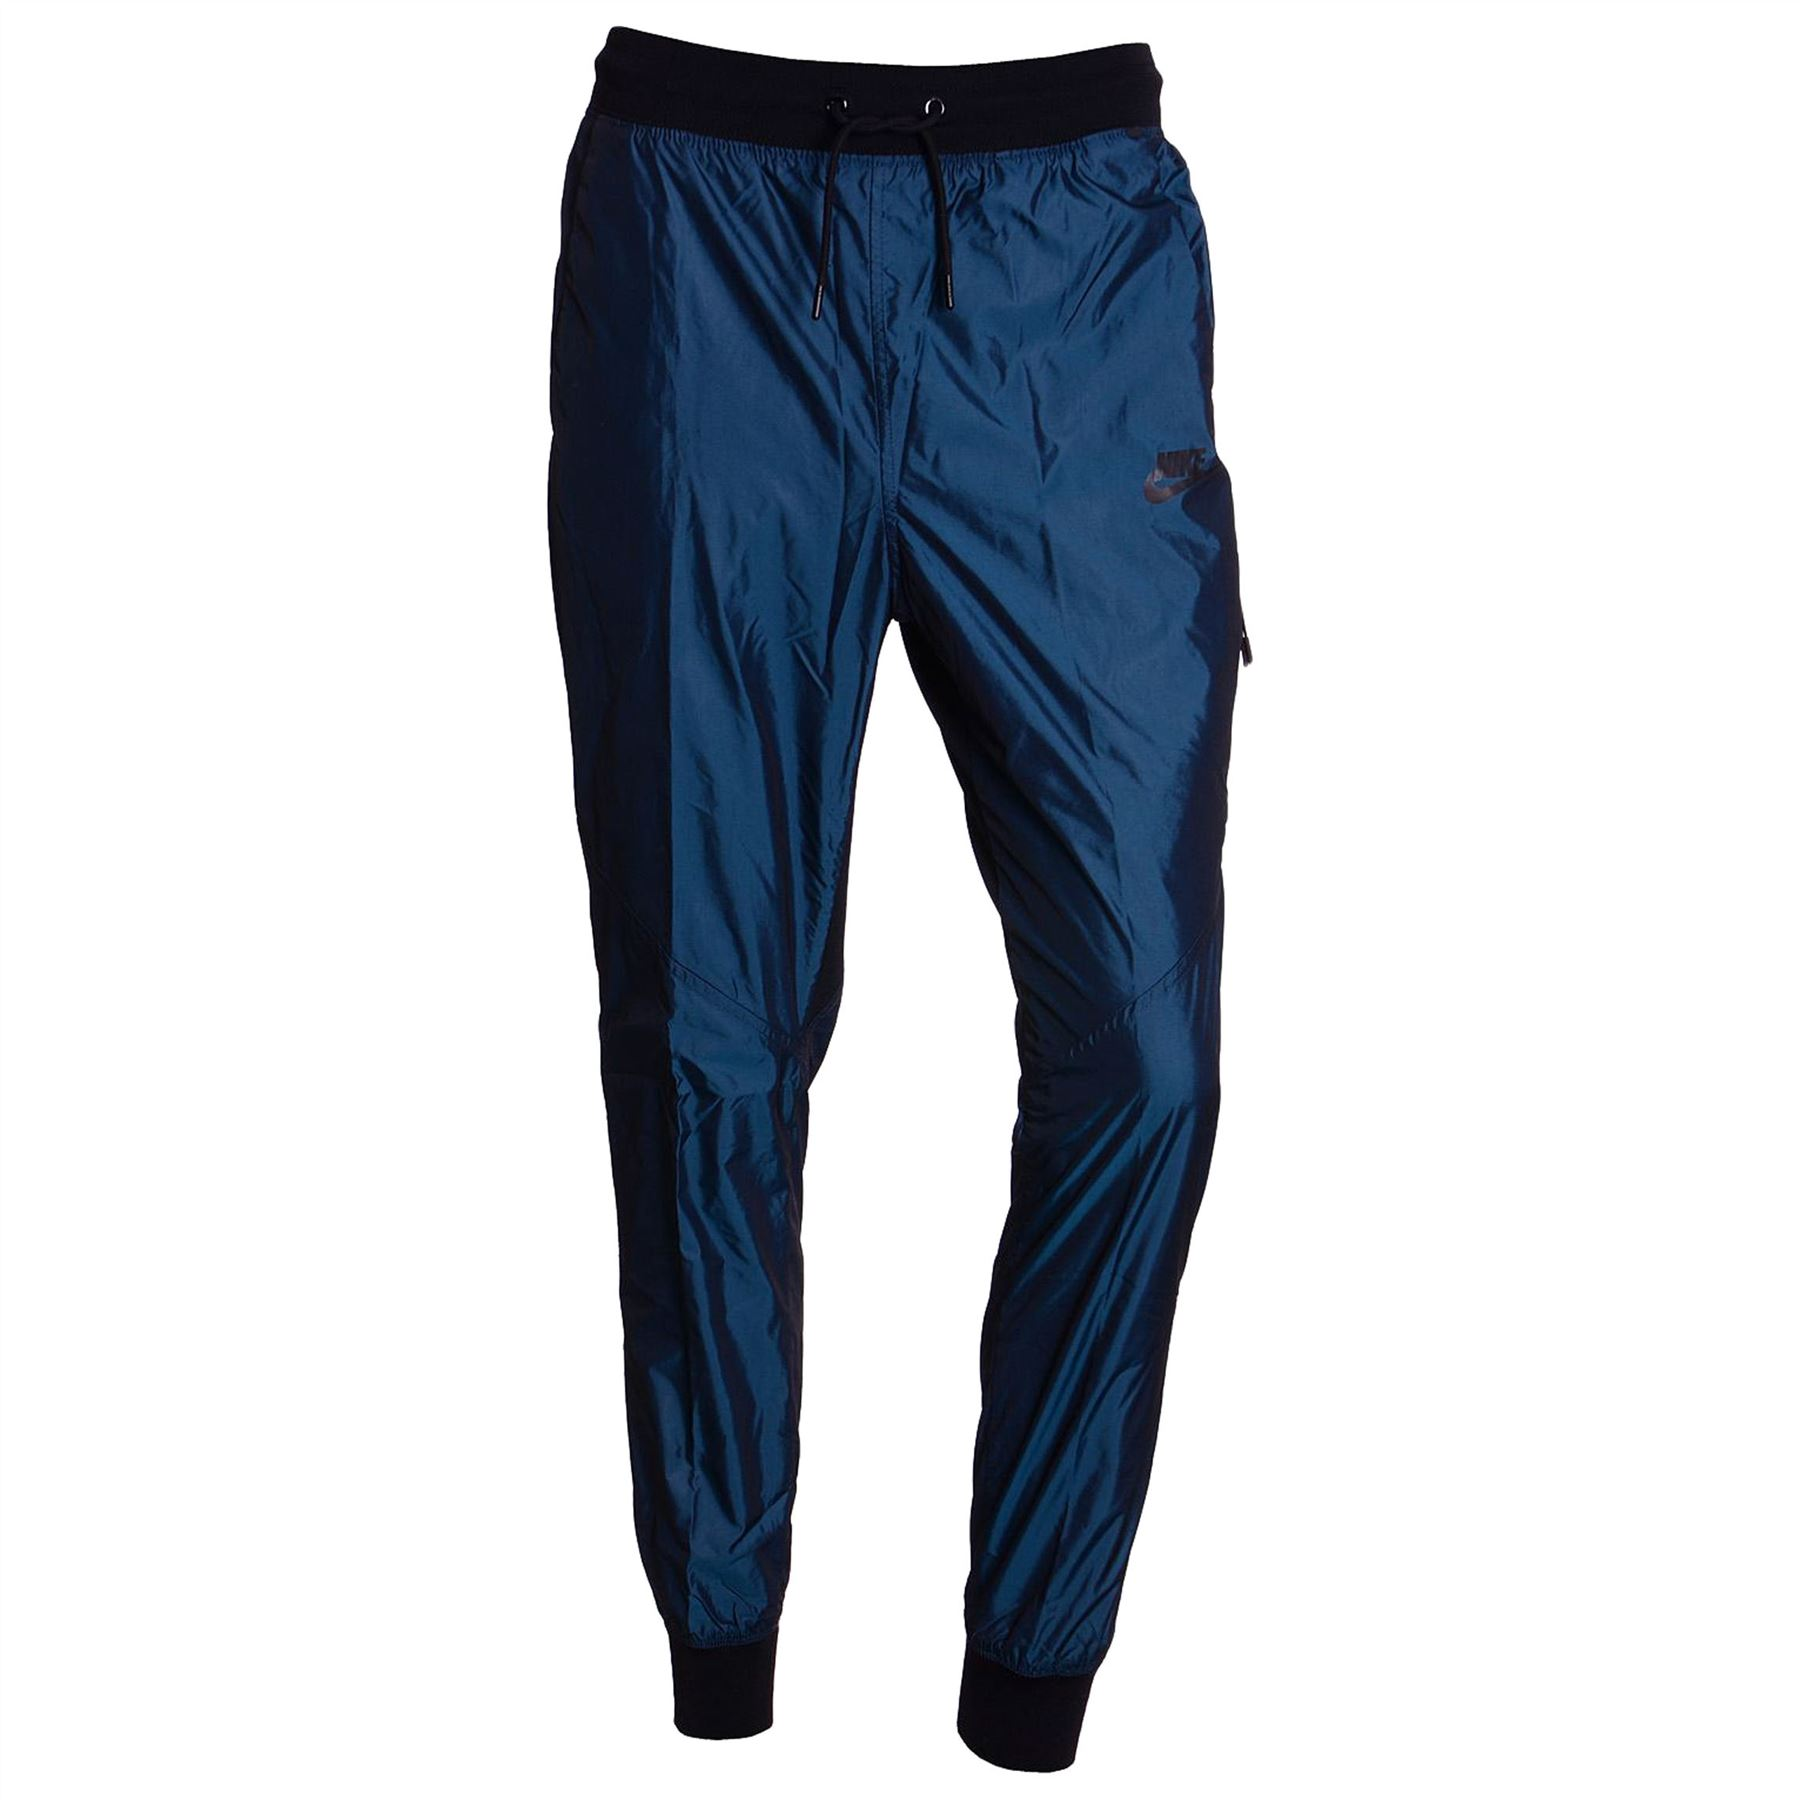 Original Nike Limitless Brushed Trousers Jogging Polycotton Fitness Bottoms